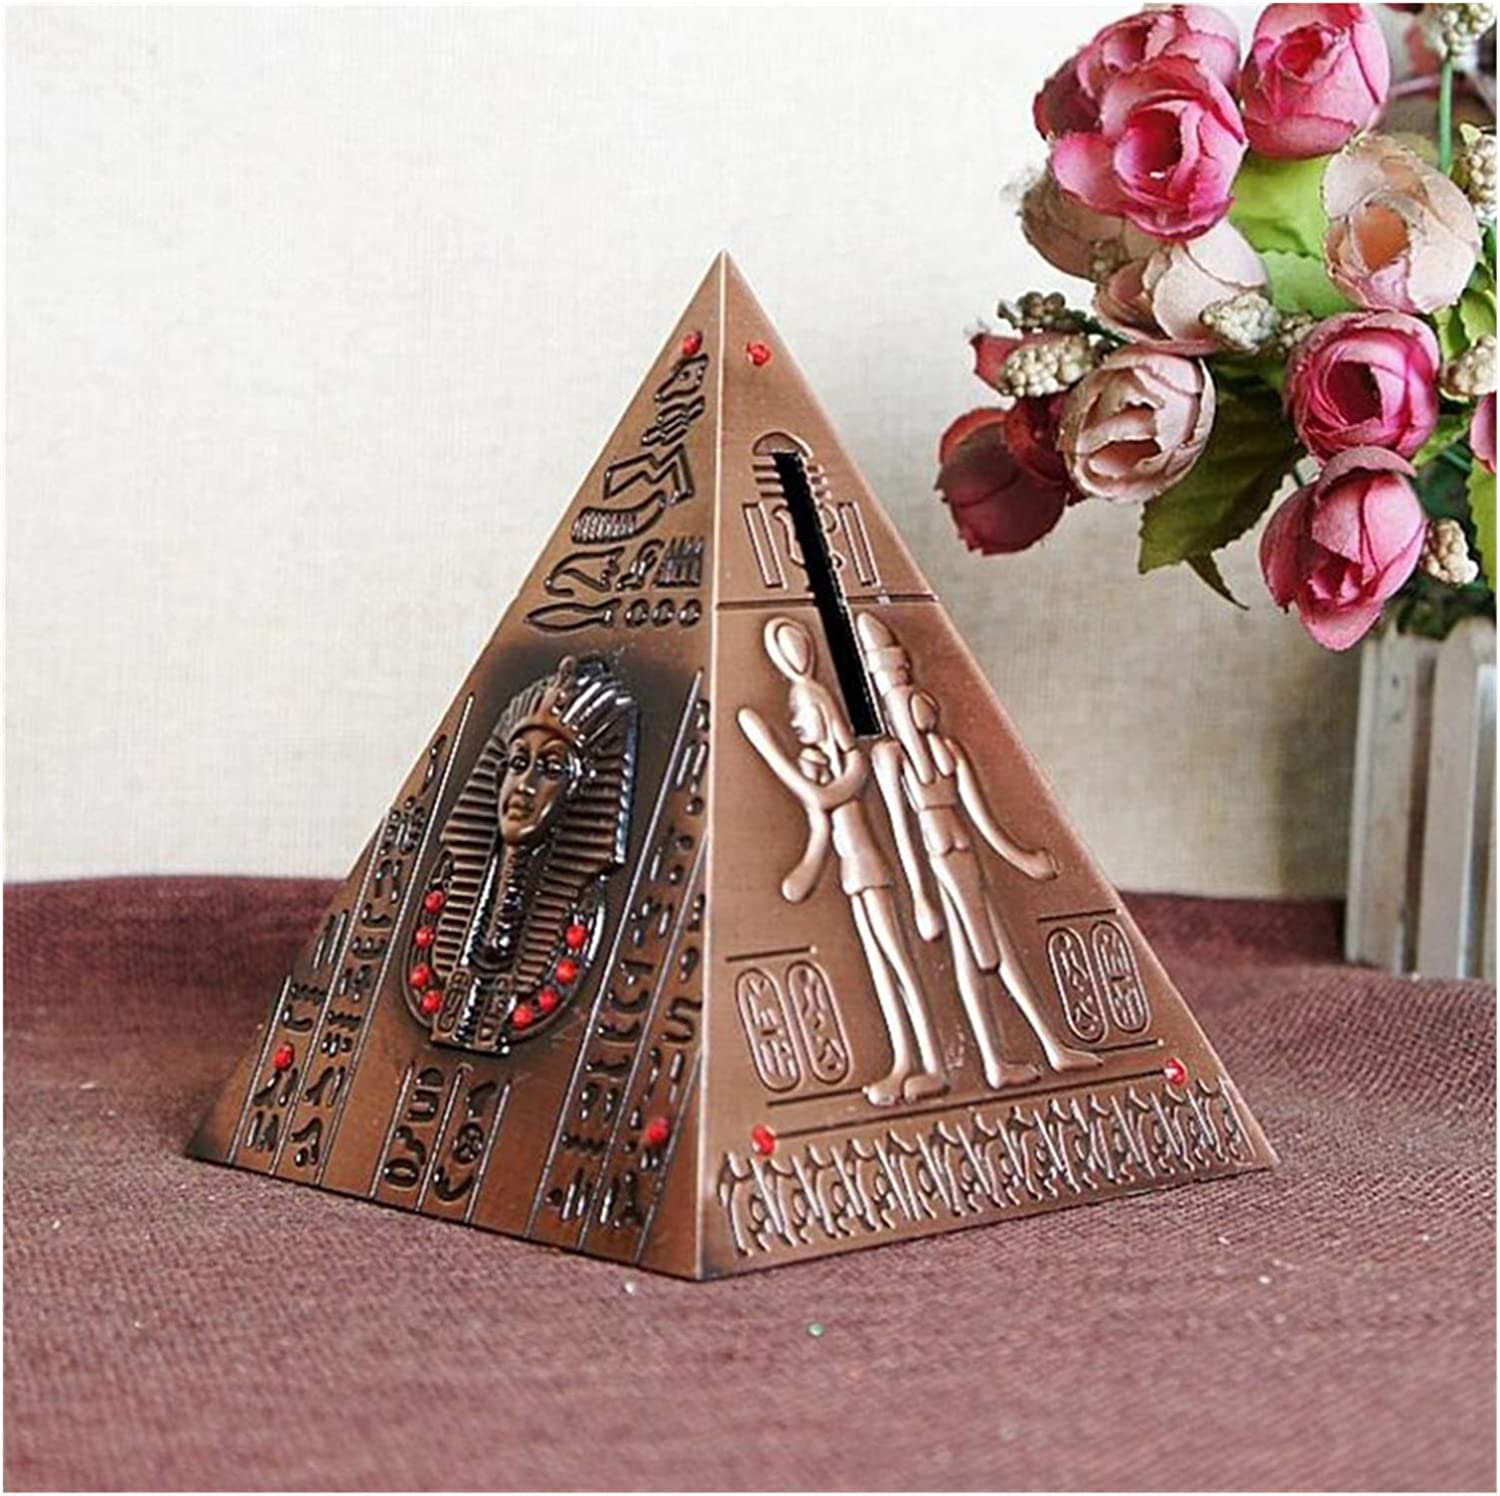 YINGZI Coin Bank lowest price Pyramid Piggy Collectio lowest price Commemorative